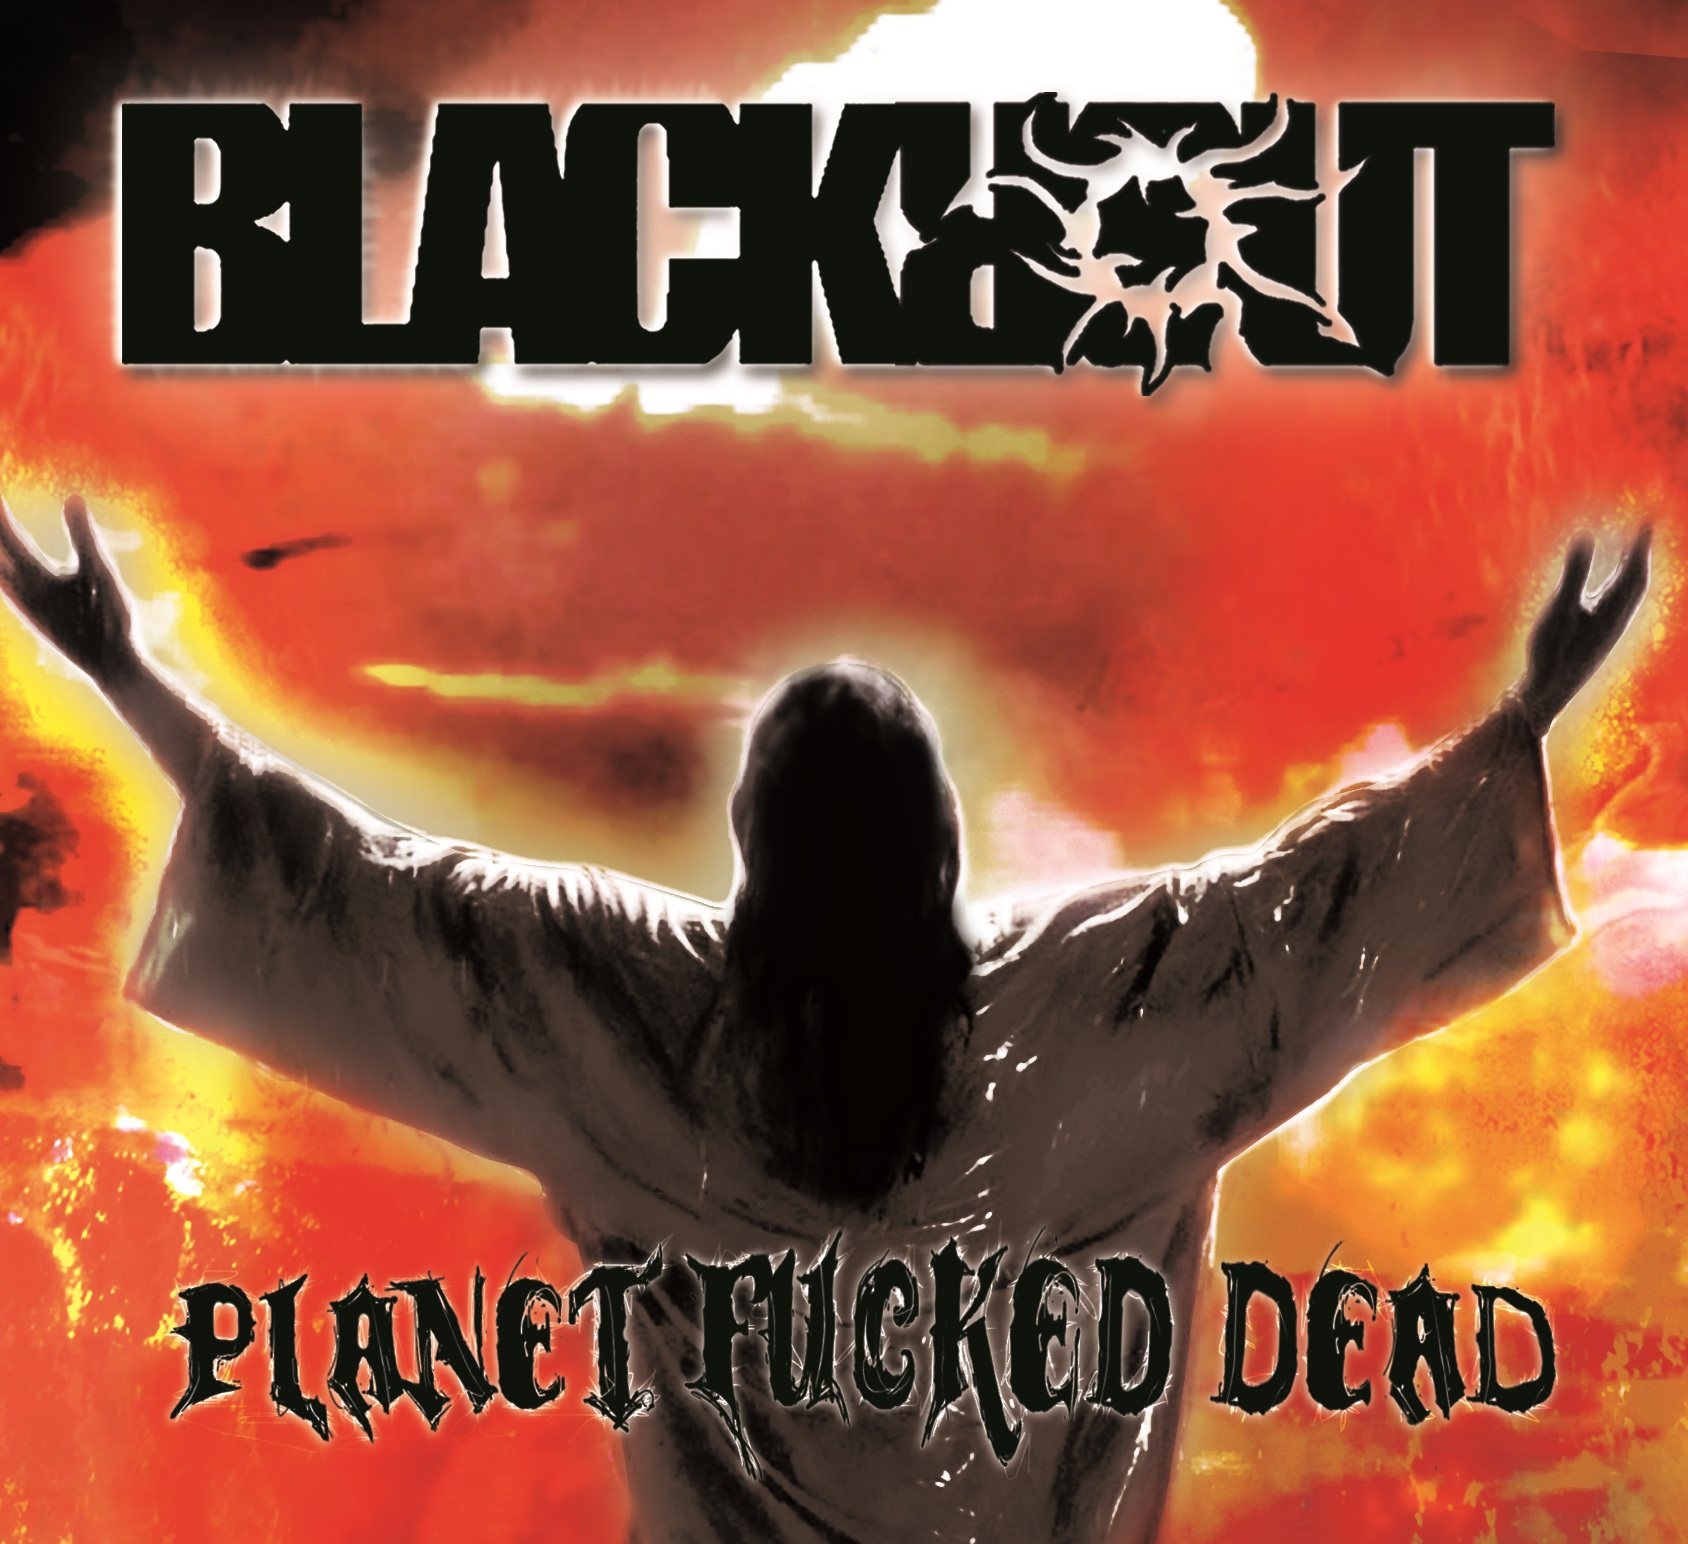 blackrout-planet-fucked-dead-cover-artwork-cover-artwork